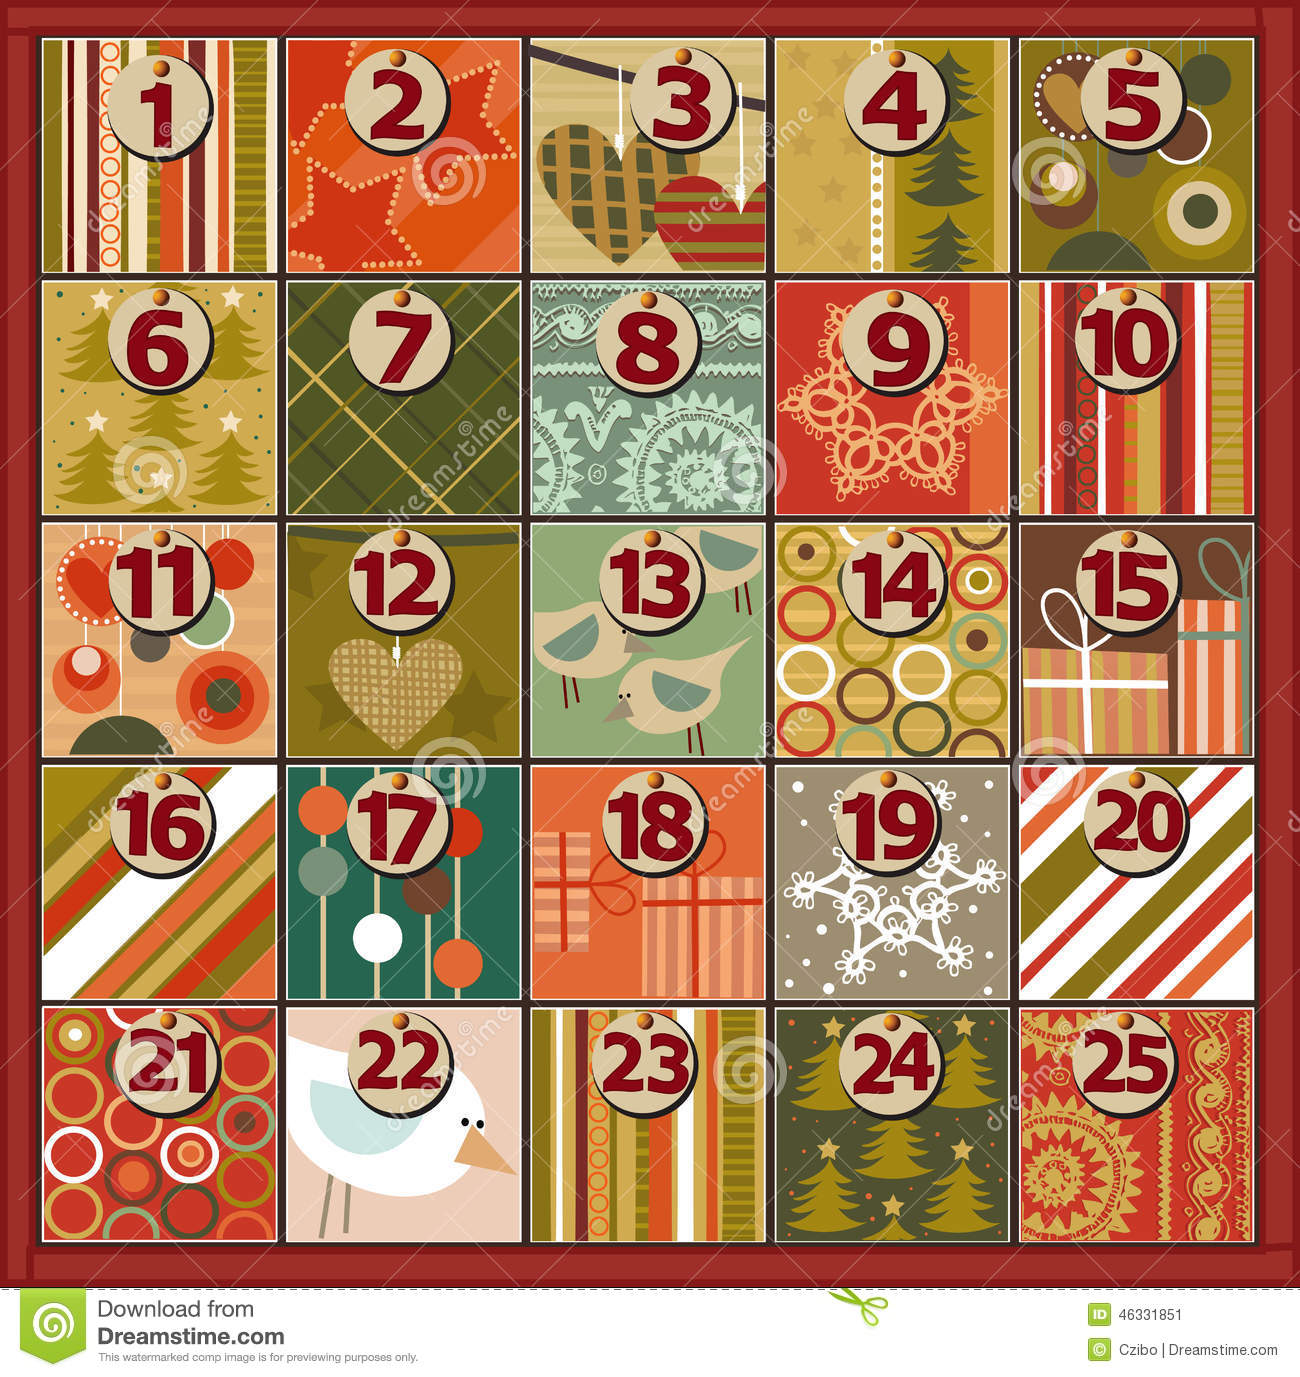 Free christmas advent calendar clipart clipart freeuse Advent Calendar Stock Vector - Image: 46331851 clipart freeuse